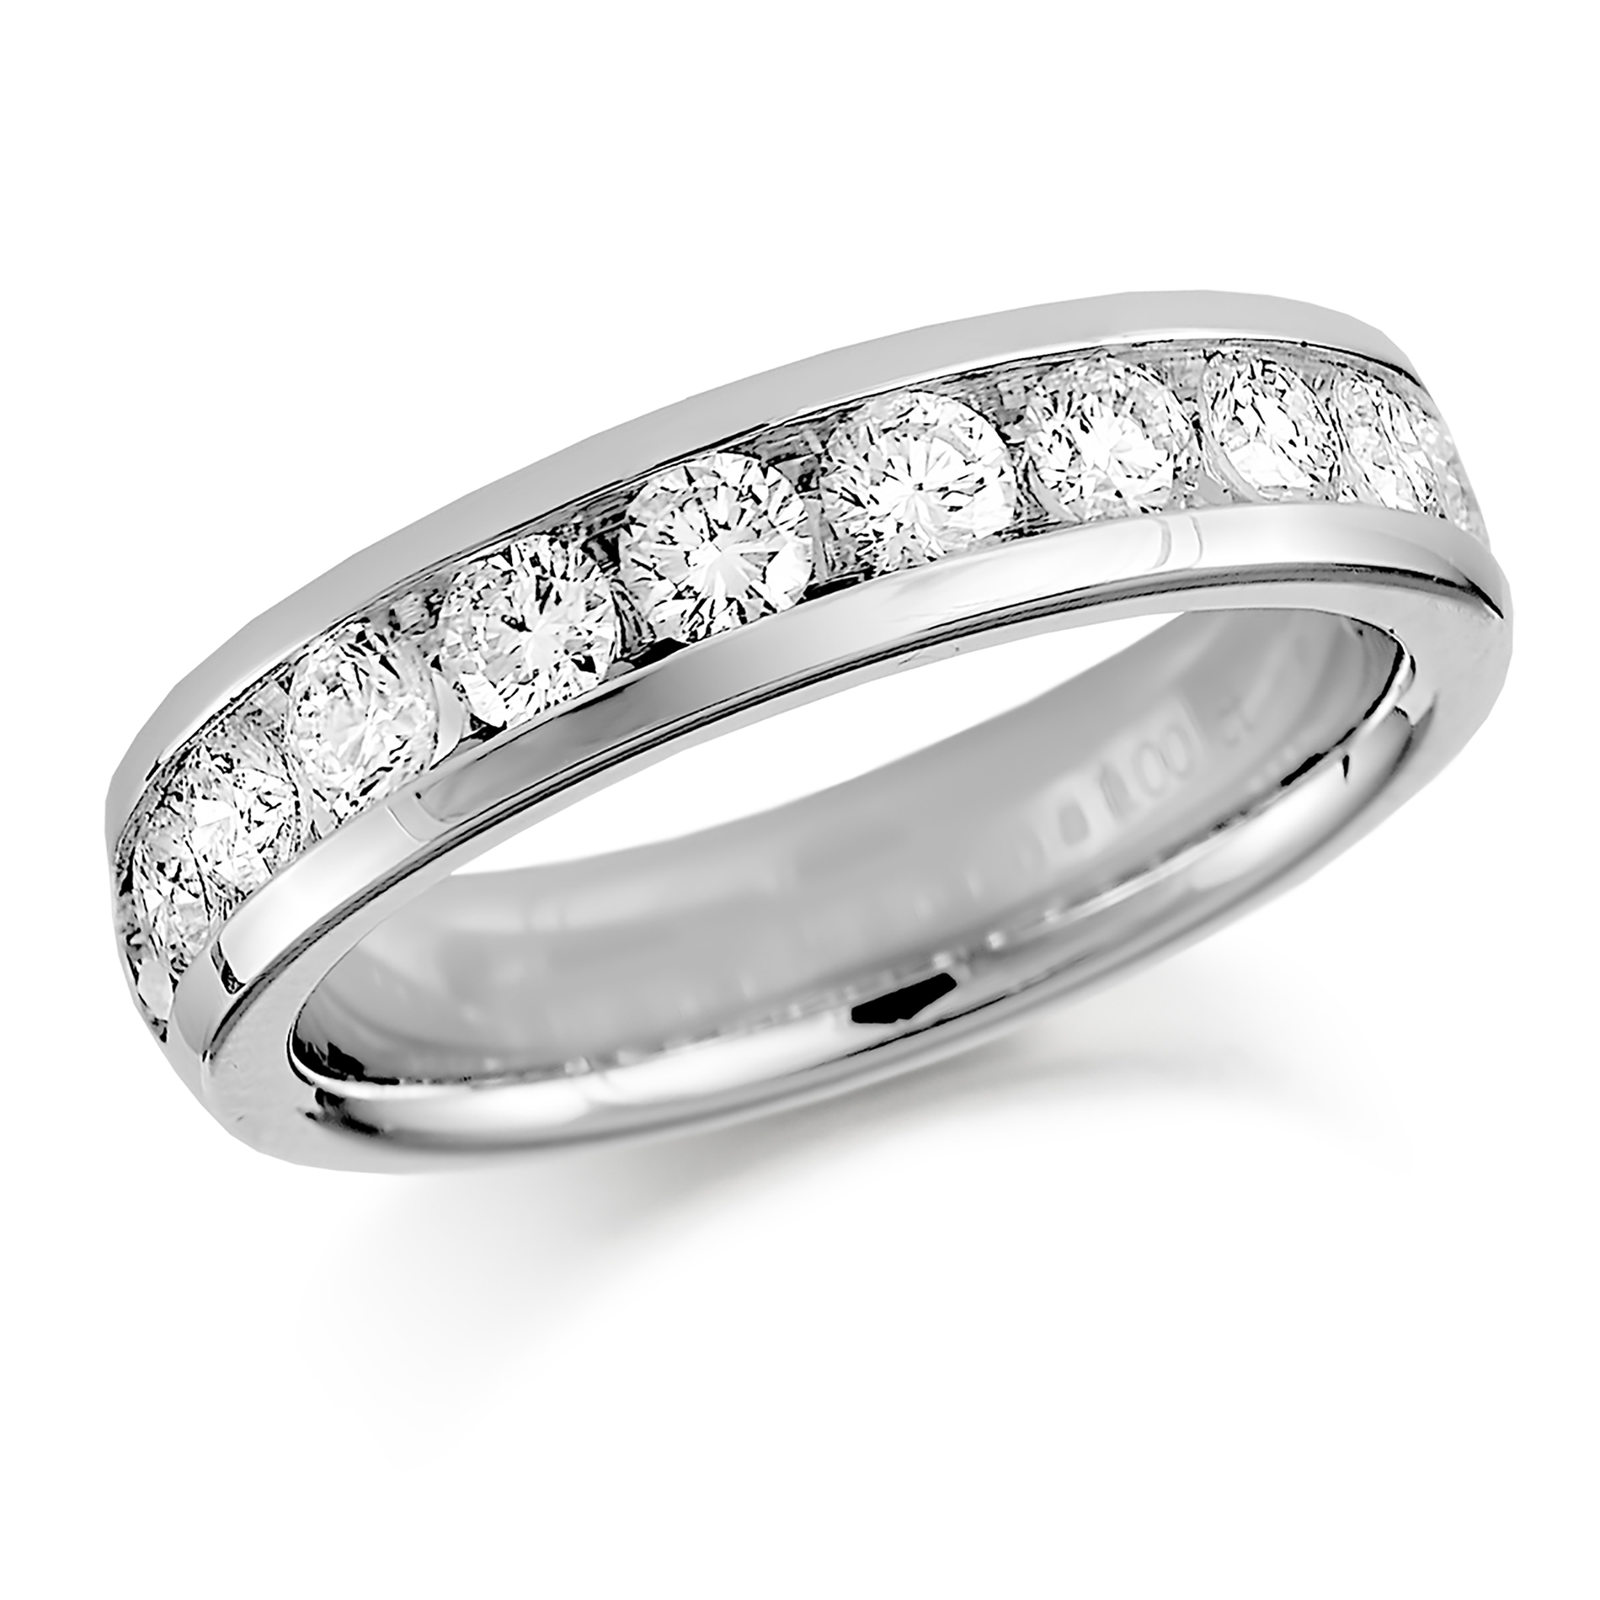 rings platinum ring bands wedding for stone diamond main men round